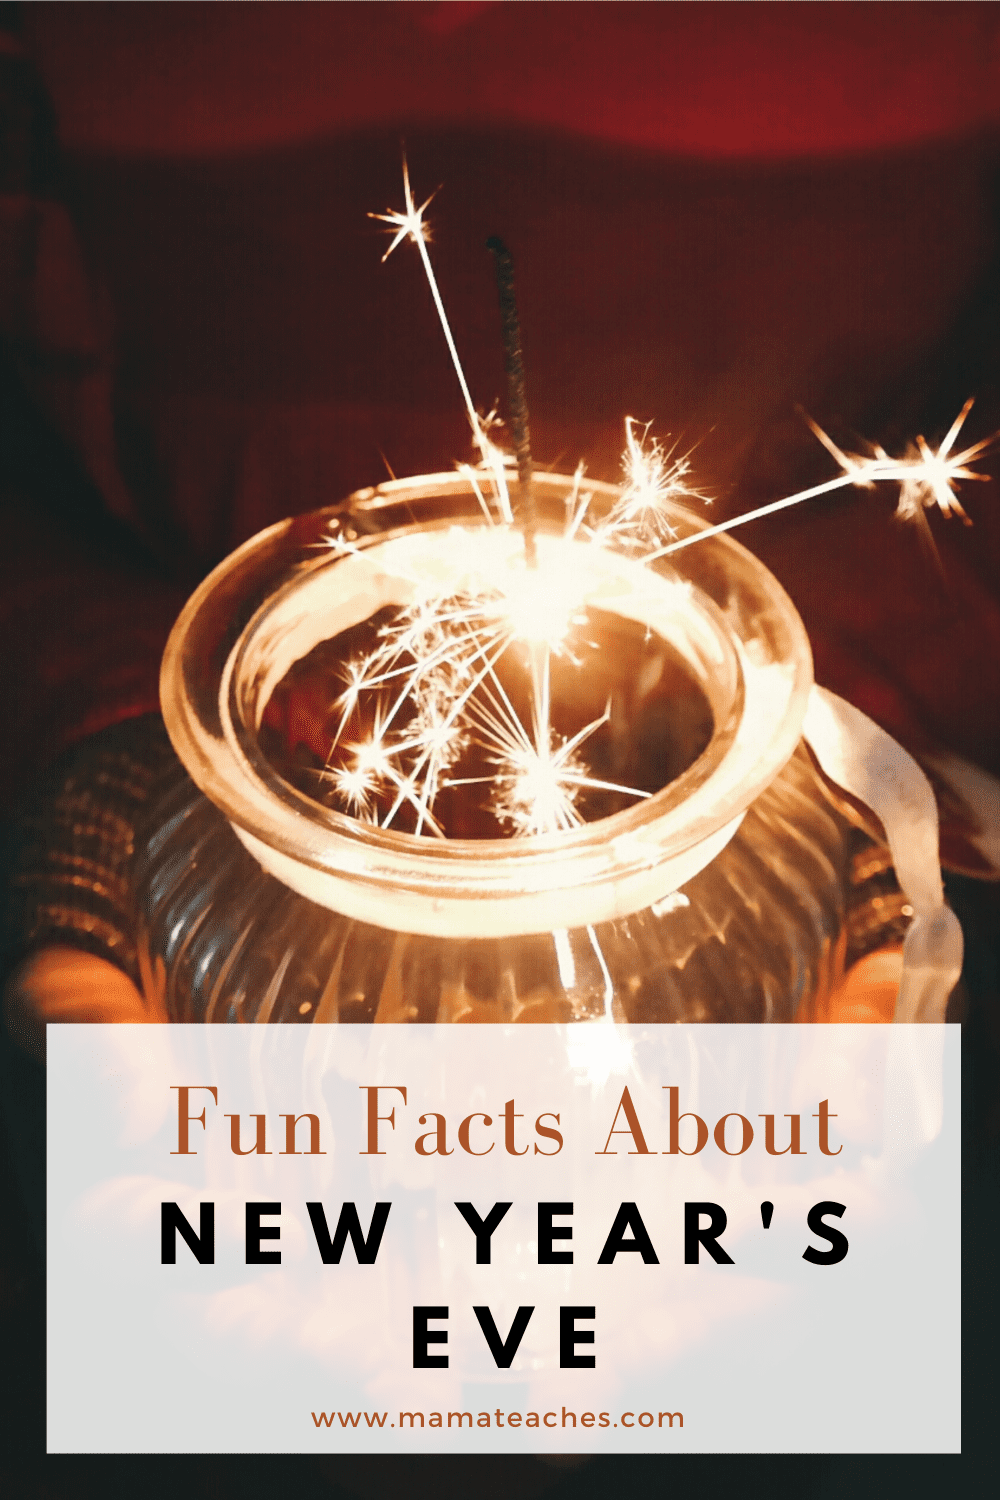 Fun Facts About New Year's Eve